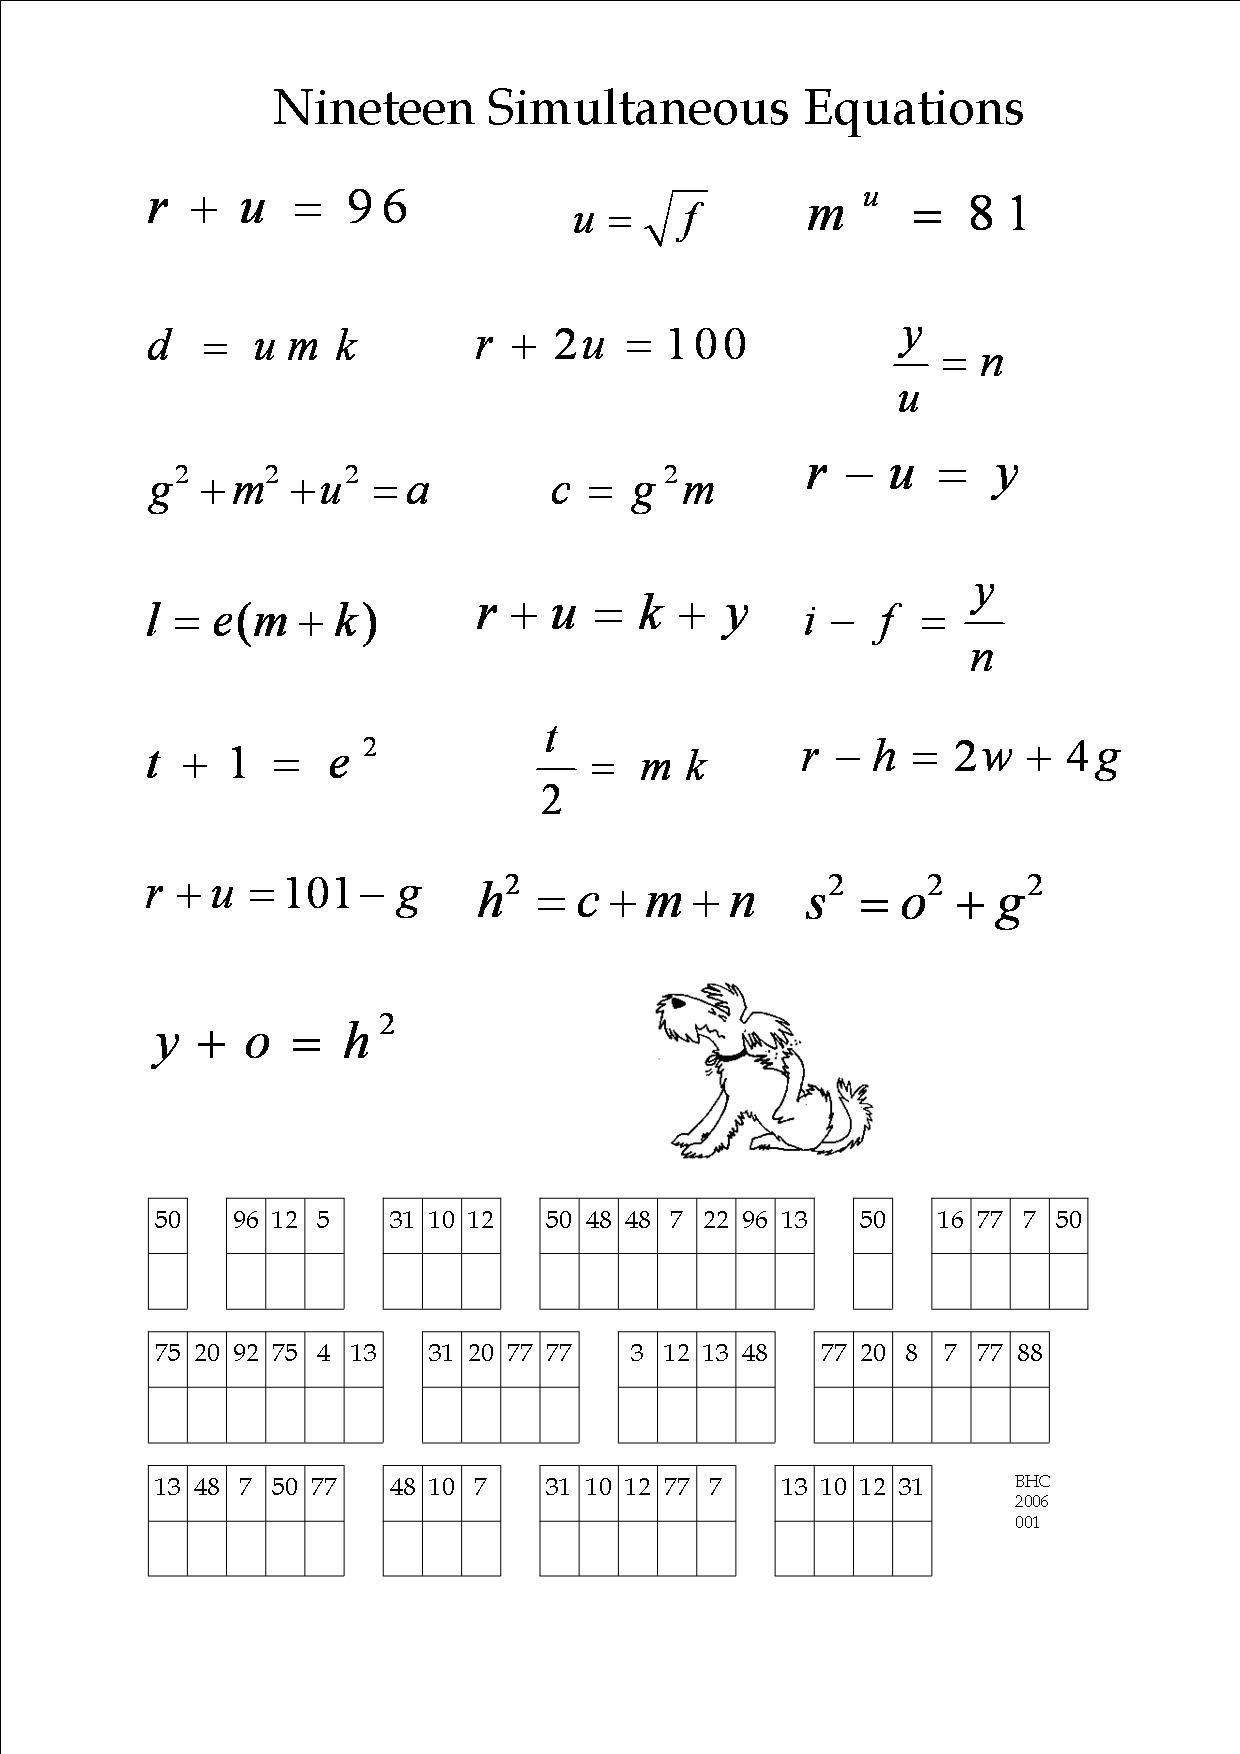 6th Grade Math Puzzle Worksheets Math Puzzle Worksheets   Math expressions [ 1754 x 1240 Pixel ]